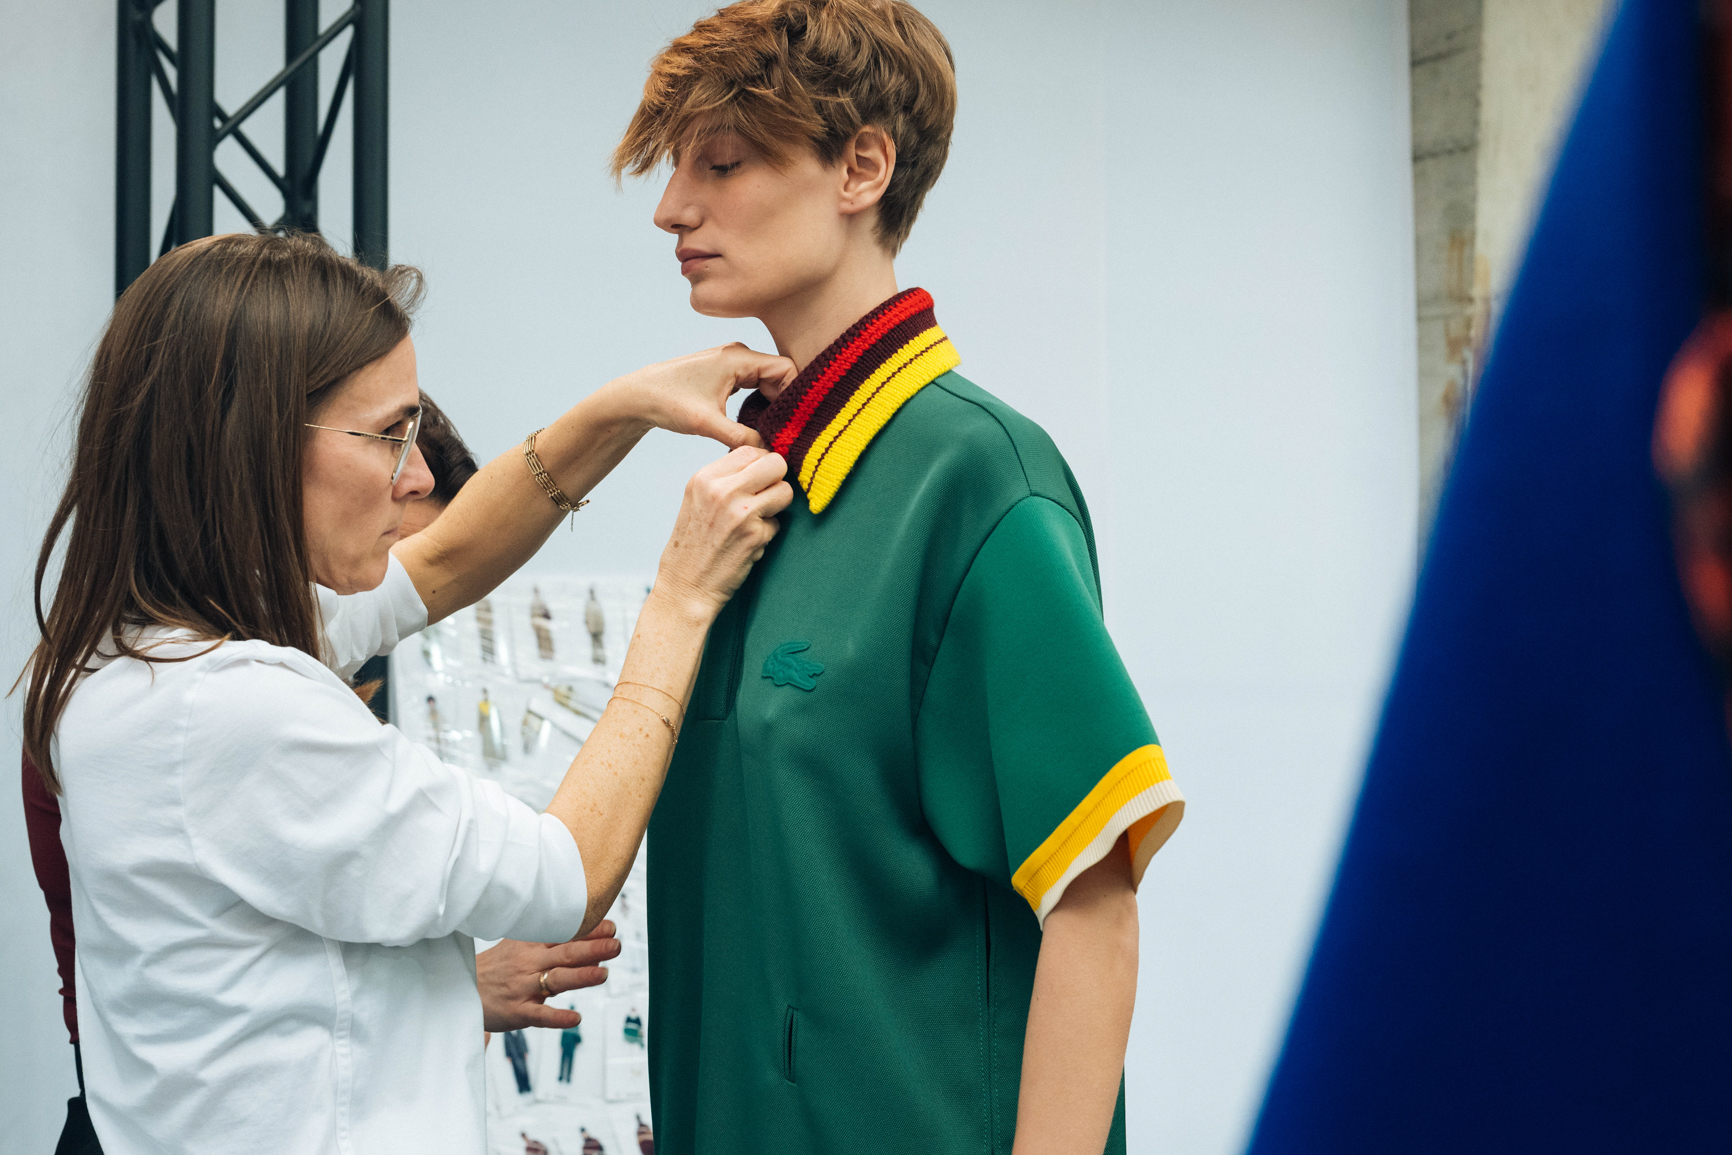 LACOSTE AW19 BACKSTAGE_by Alexandre Faraci18.jpg